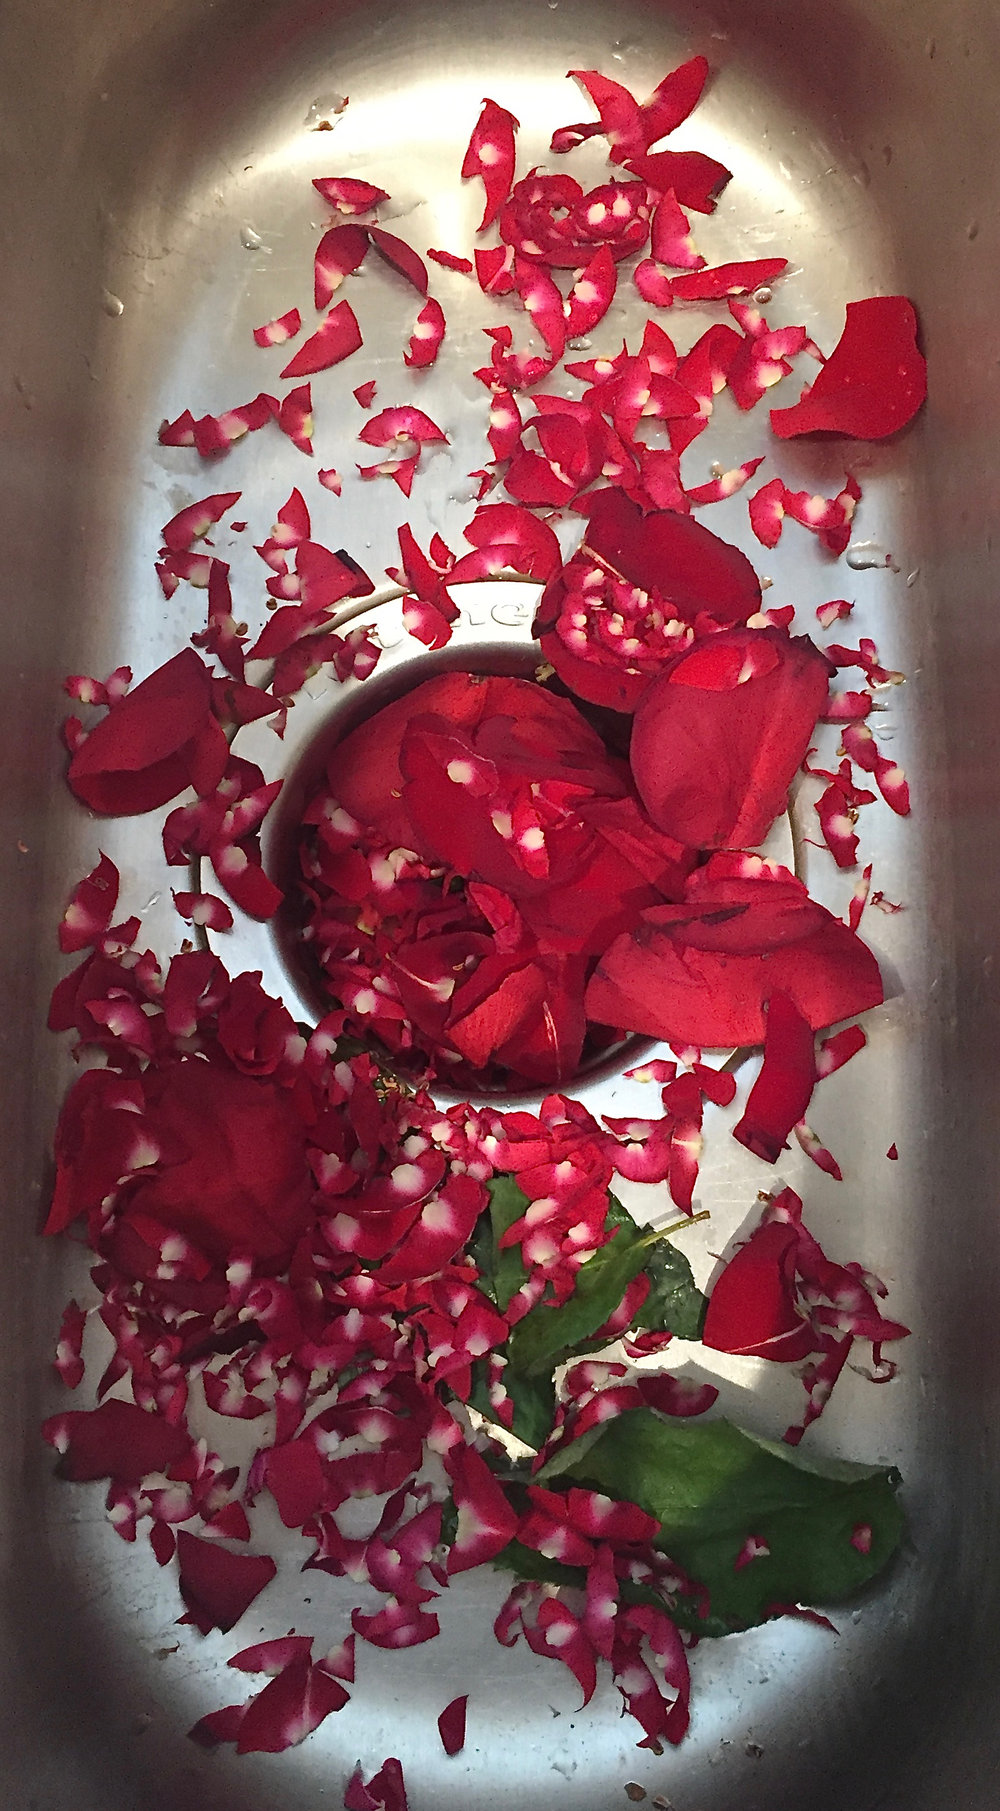 rose petal trimmings; you want just the velvety red parts!